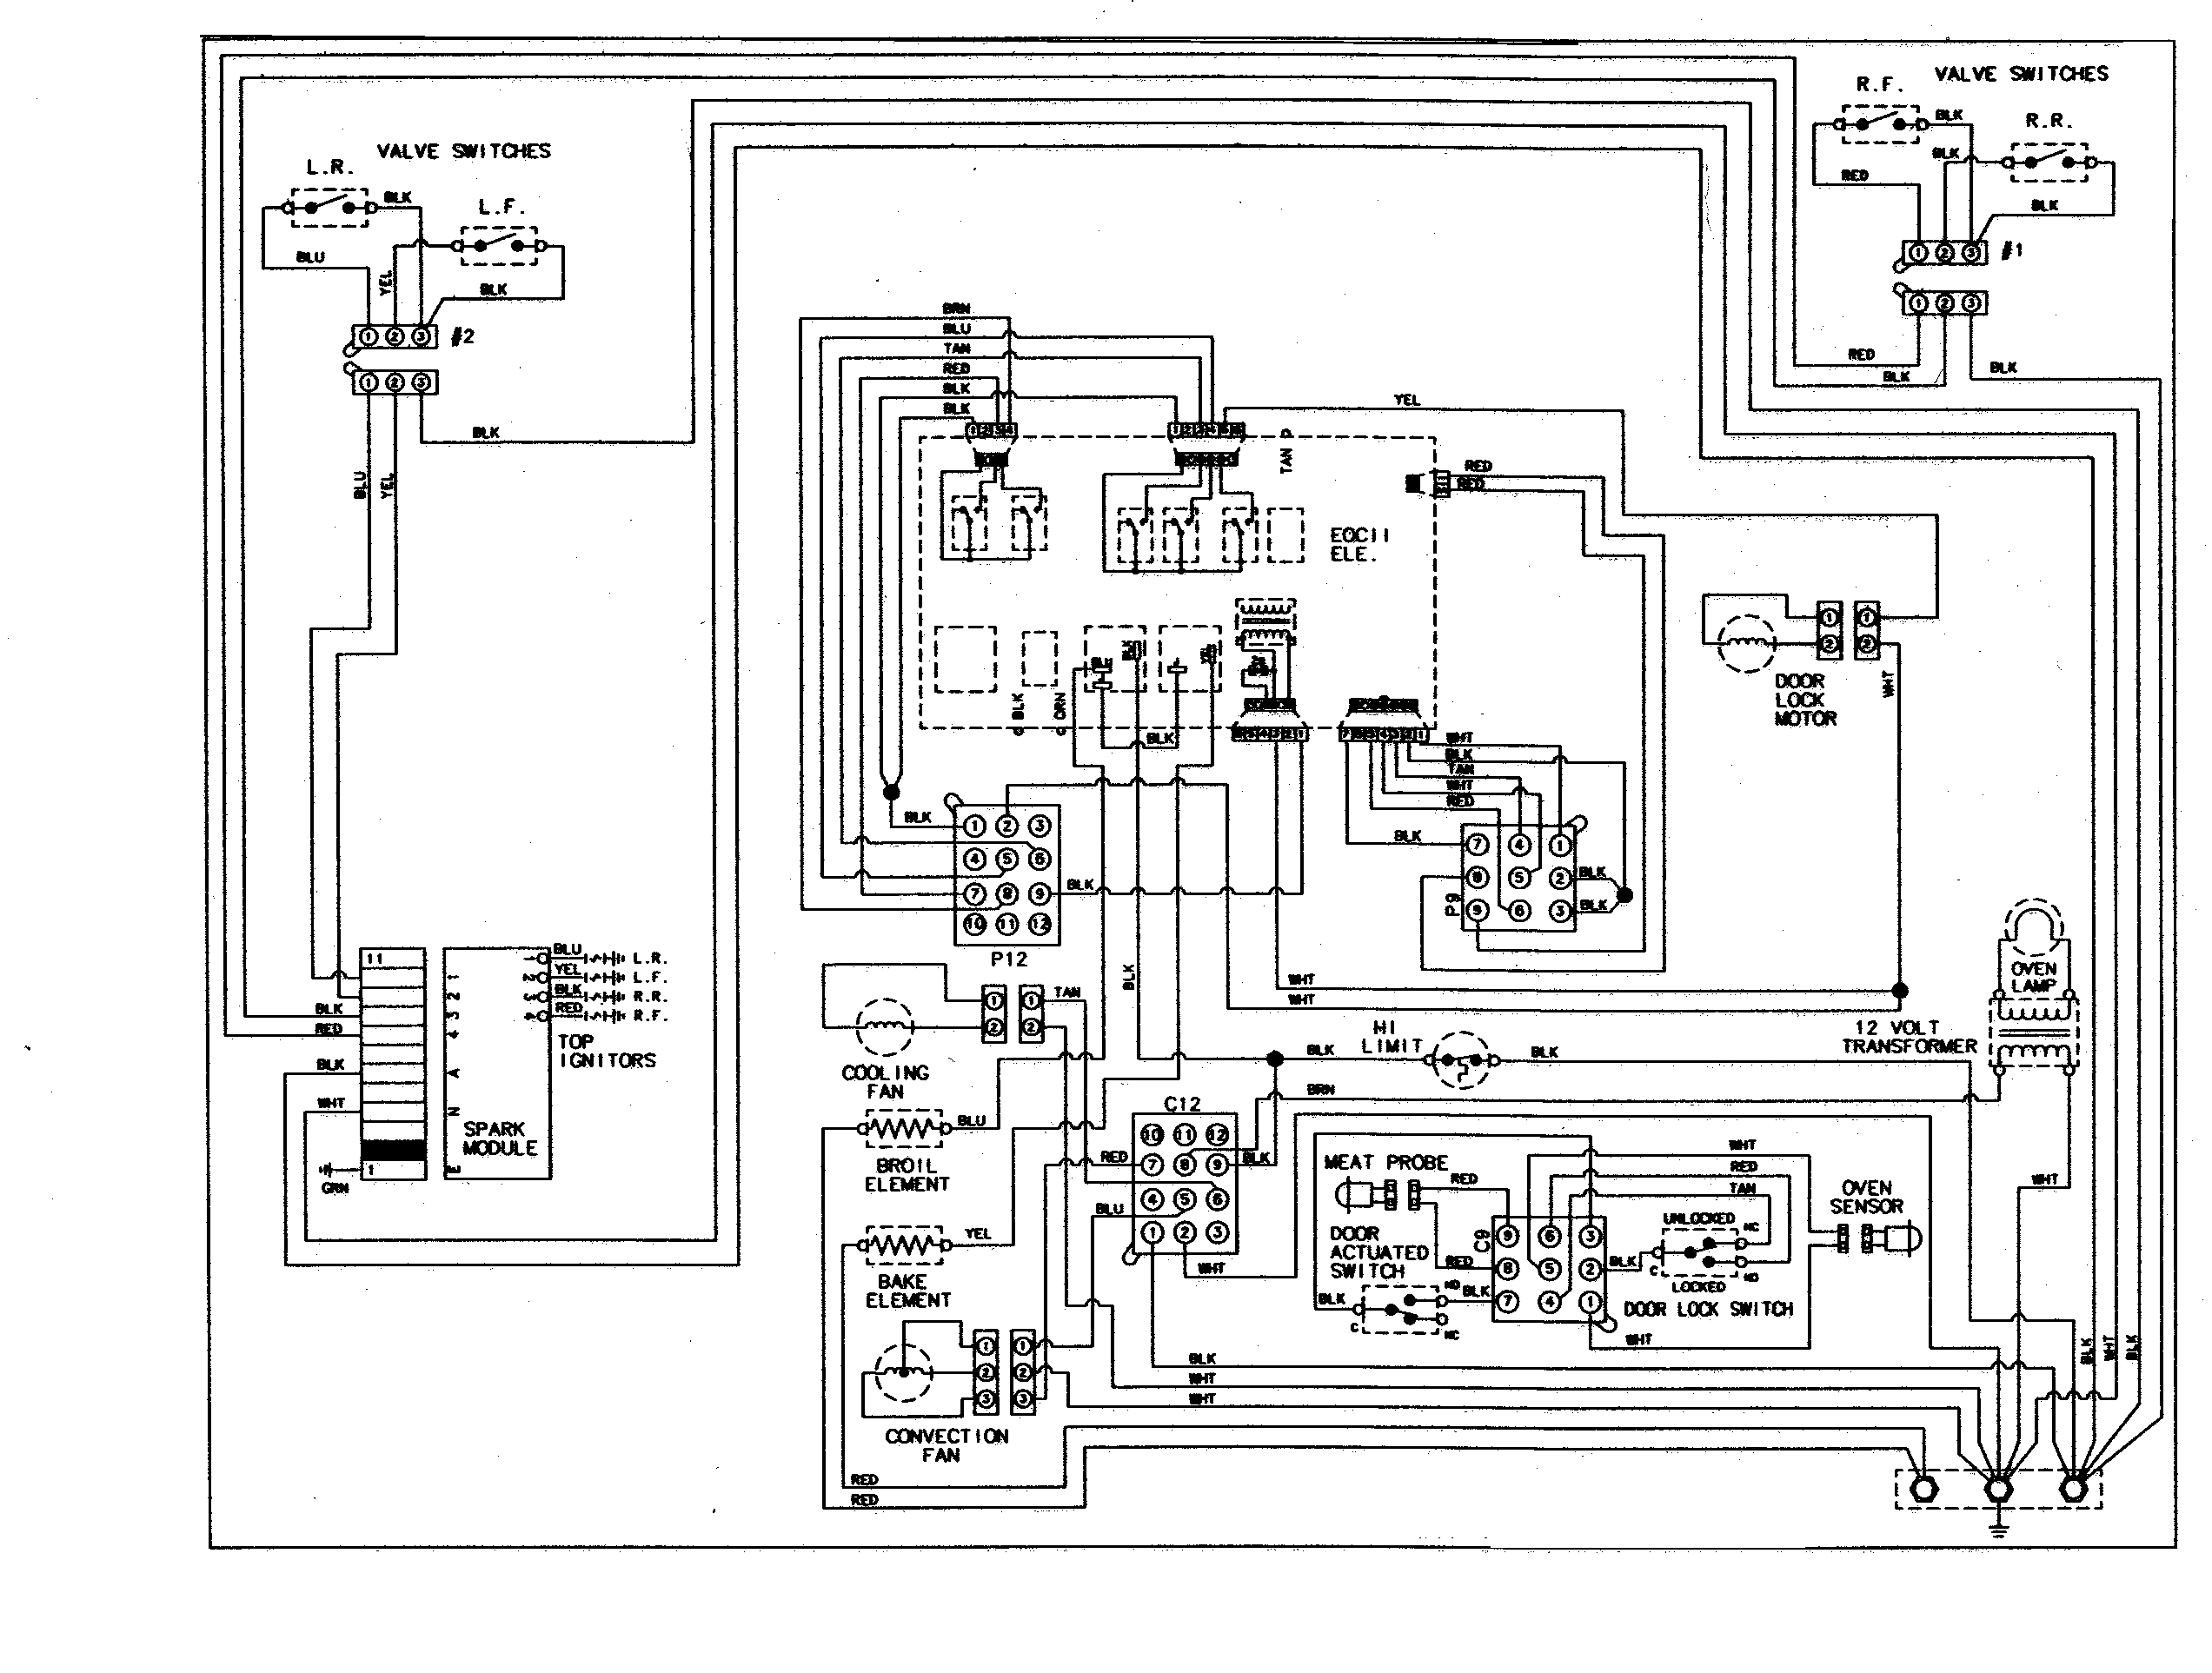 wiring diagram for ge range wiring wiring diagrams online ge stove wiring diagram ge image wiring diagram